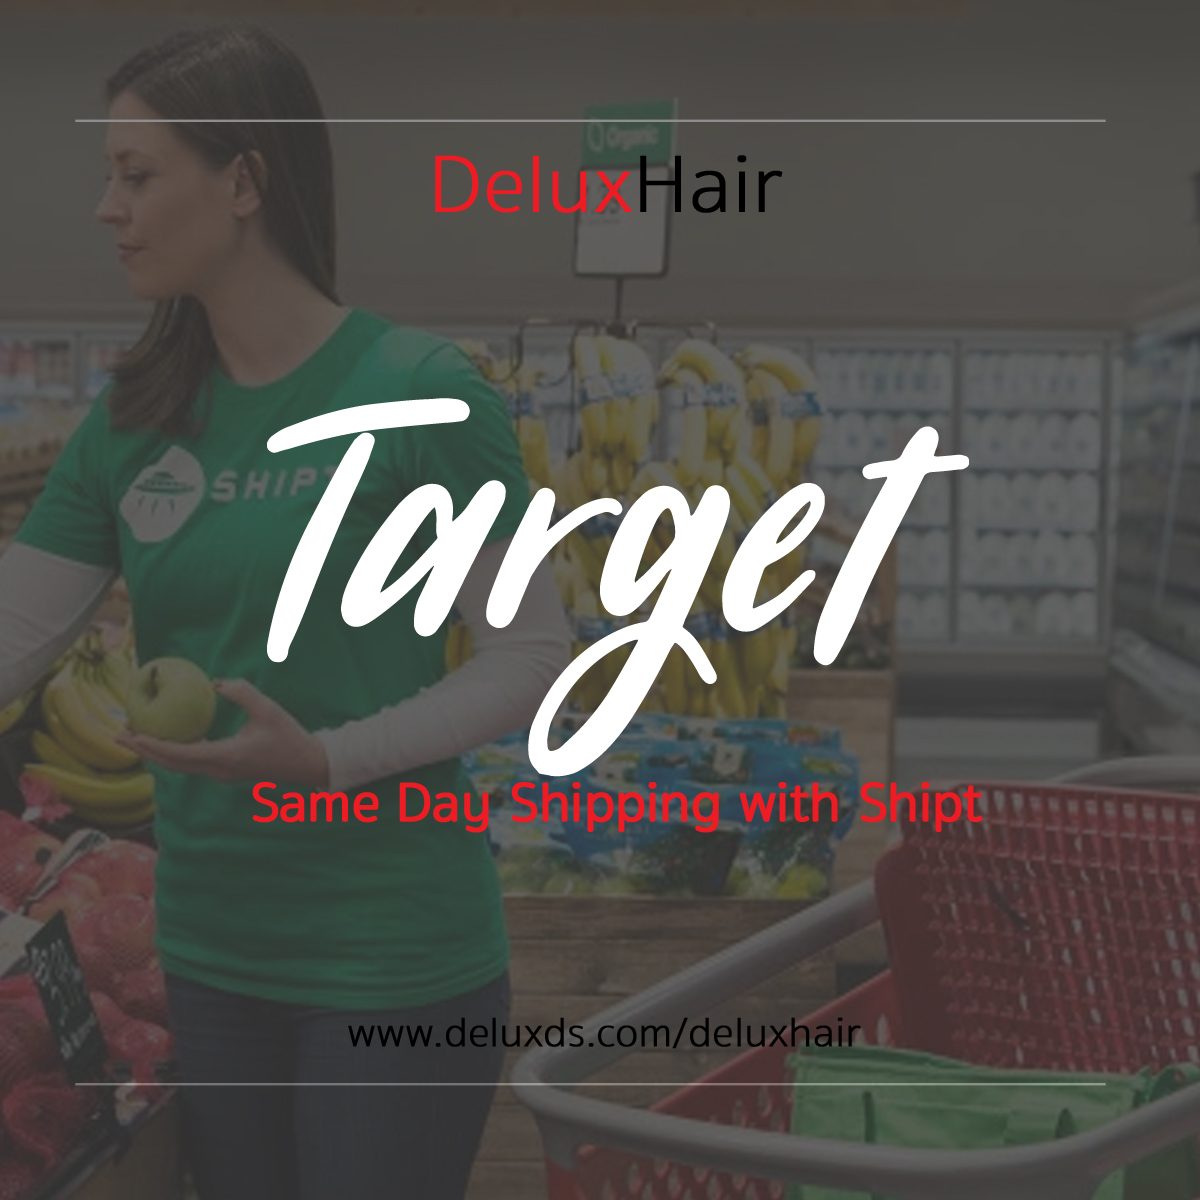 DeluxHair – Same Day Shipping with Target – Delux Designs (DE), LLC